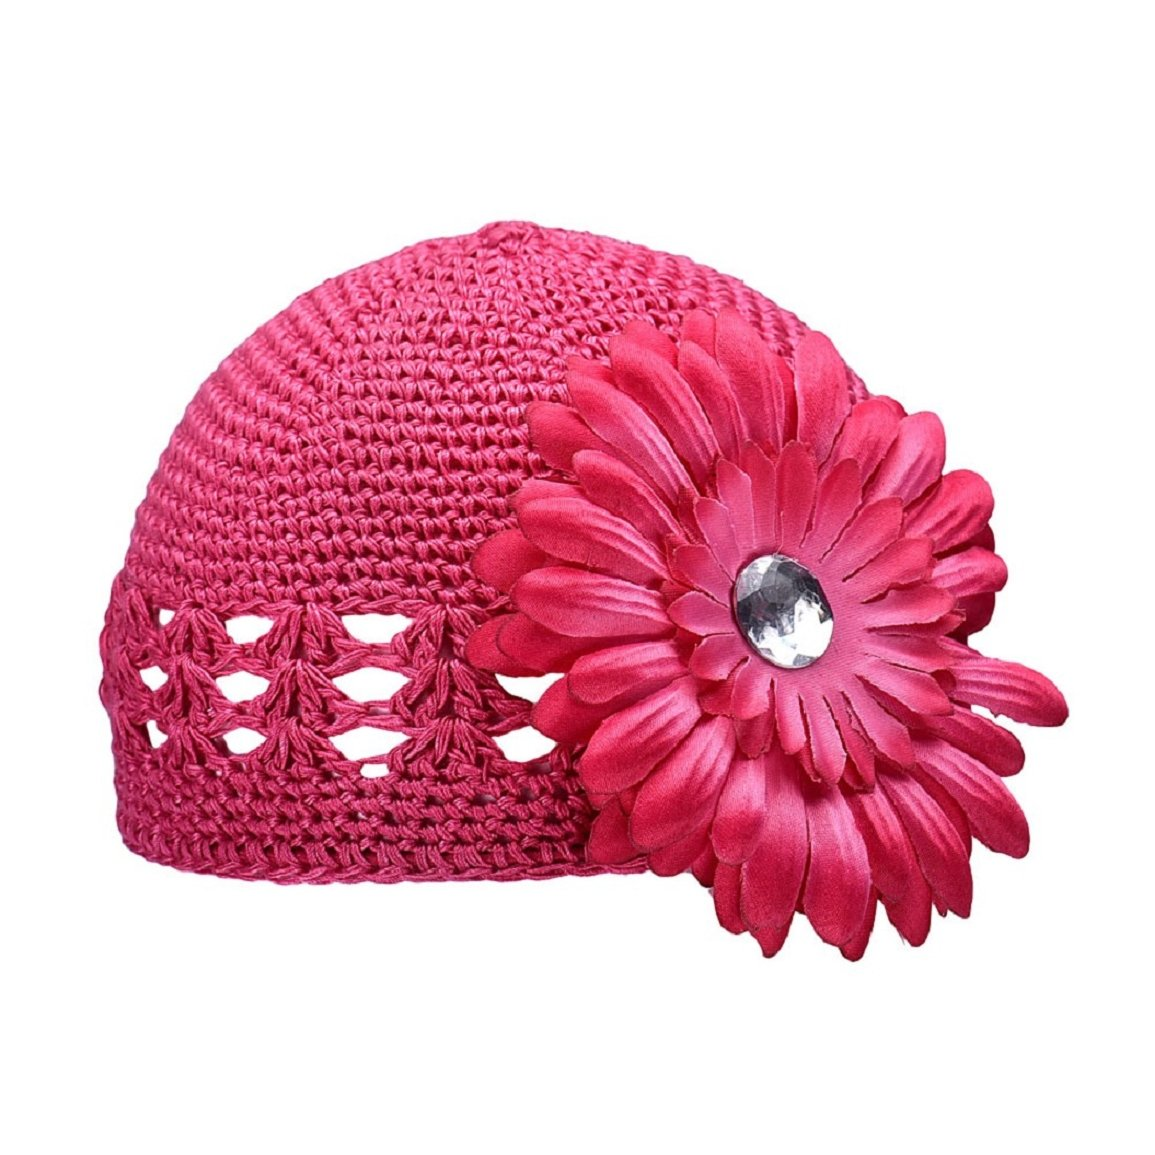 Changeshopping Baby girl's Flower Hats Baby Hats hat winter autumn (Red) Changeshopping 5464